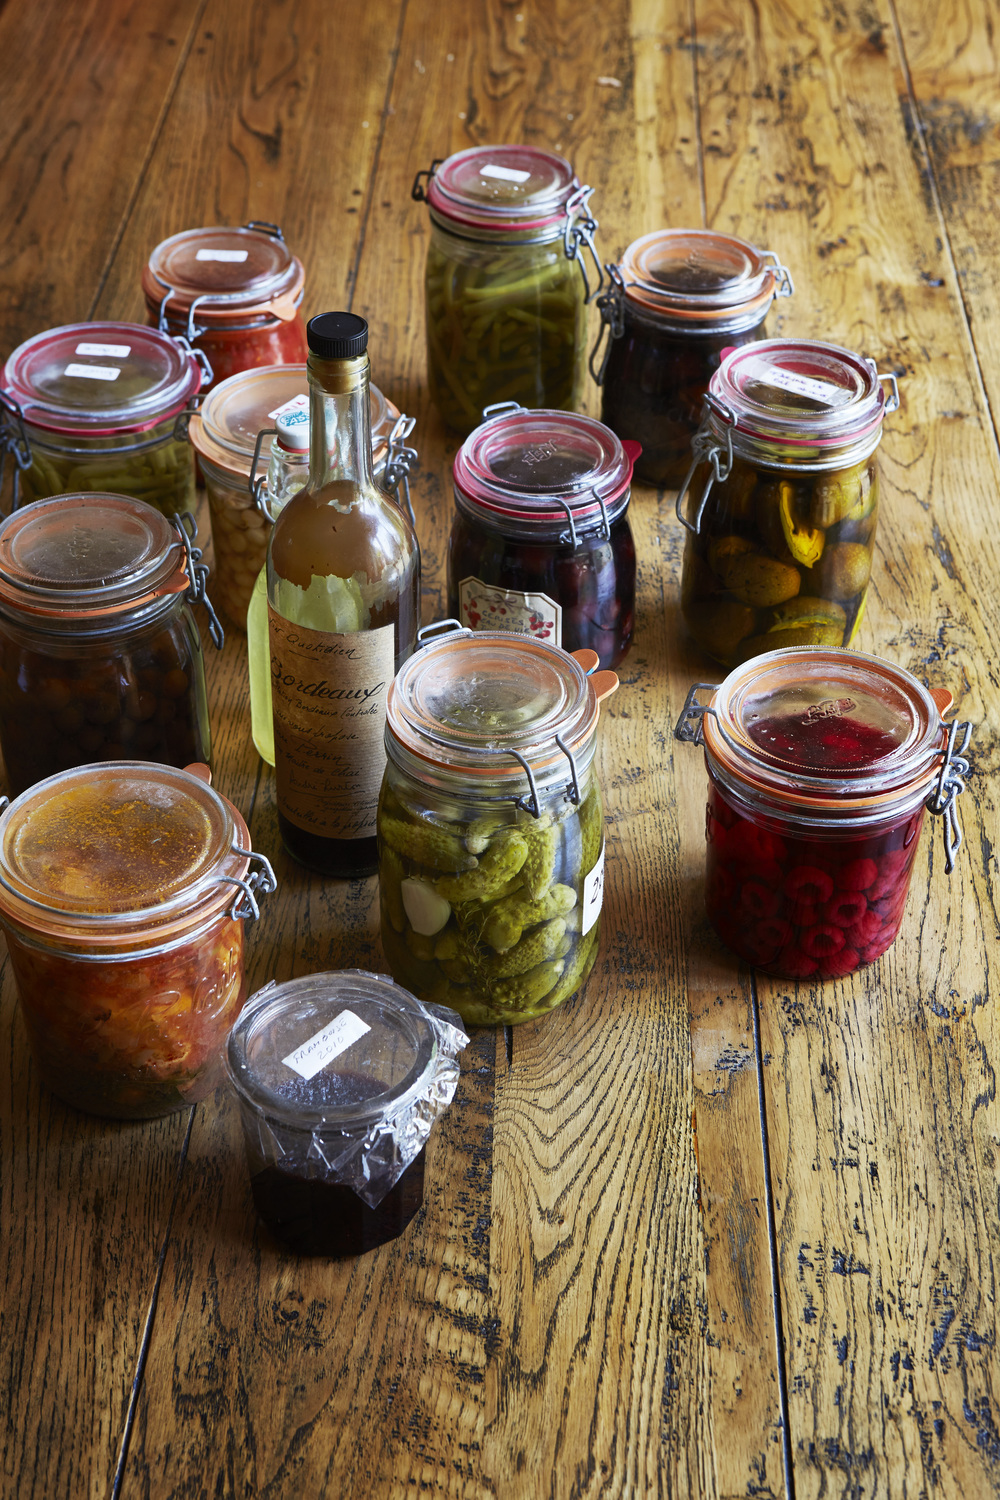 Preserves made by Jean-Pierre / Photograph © Jan Baldwin